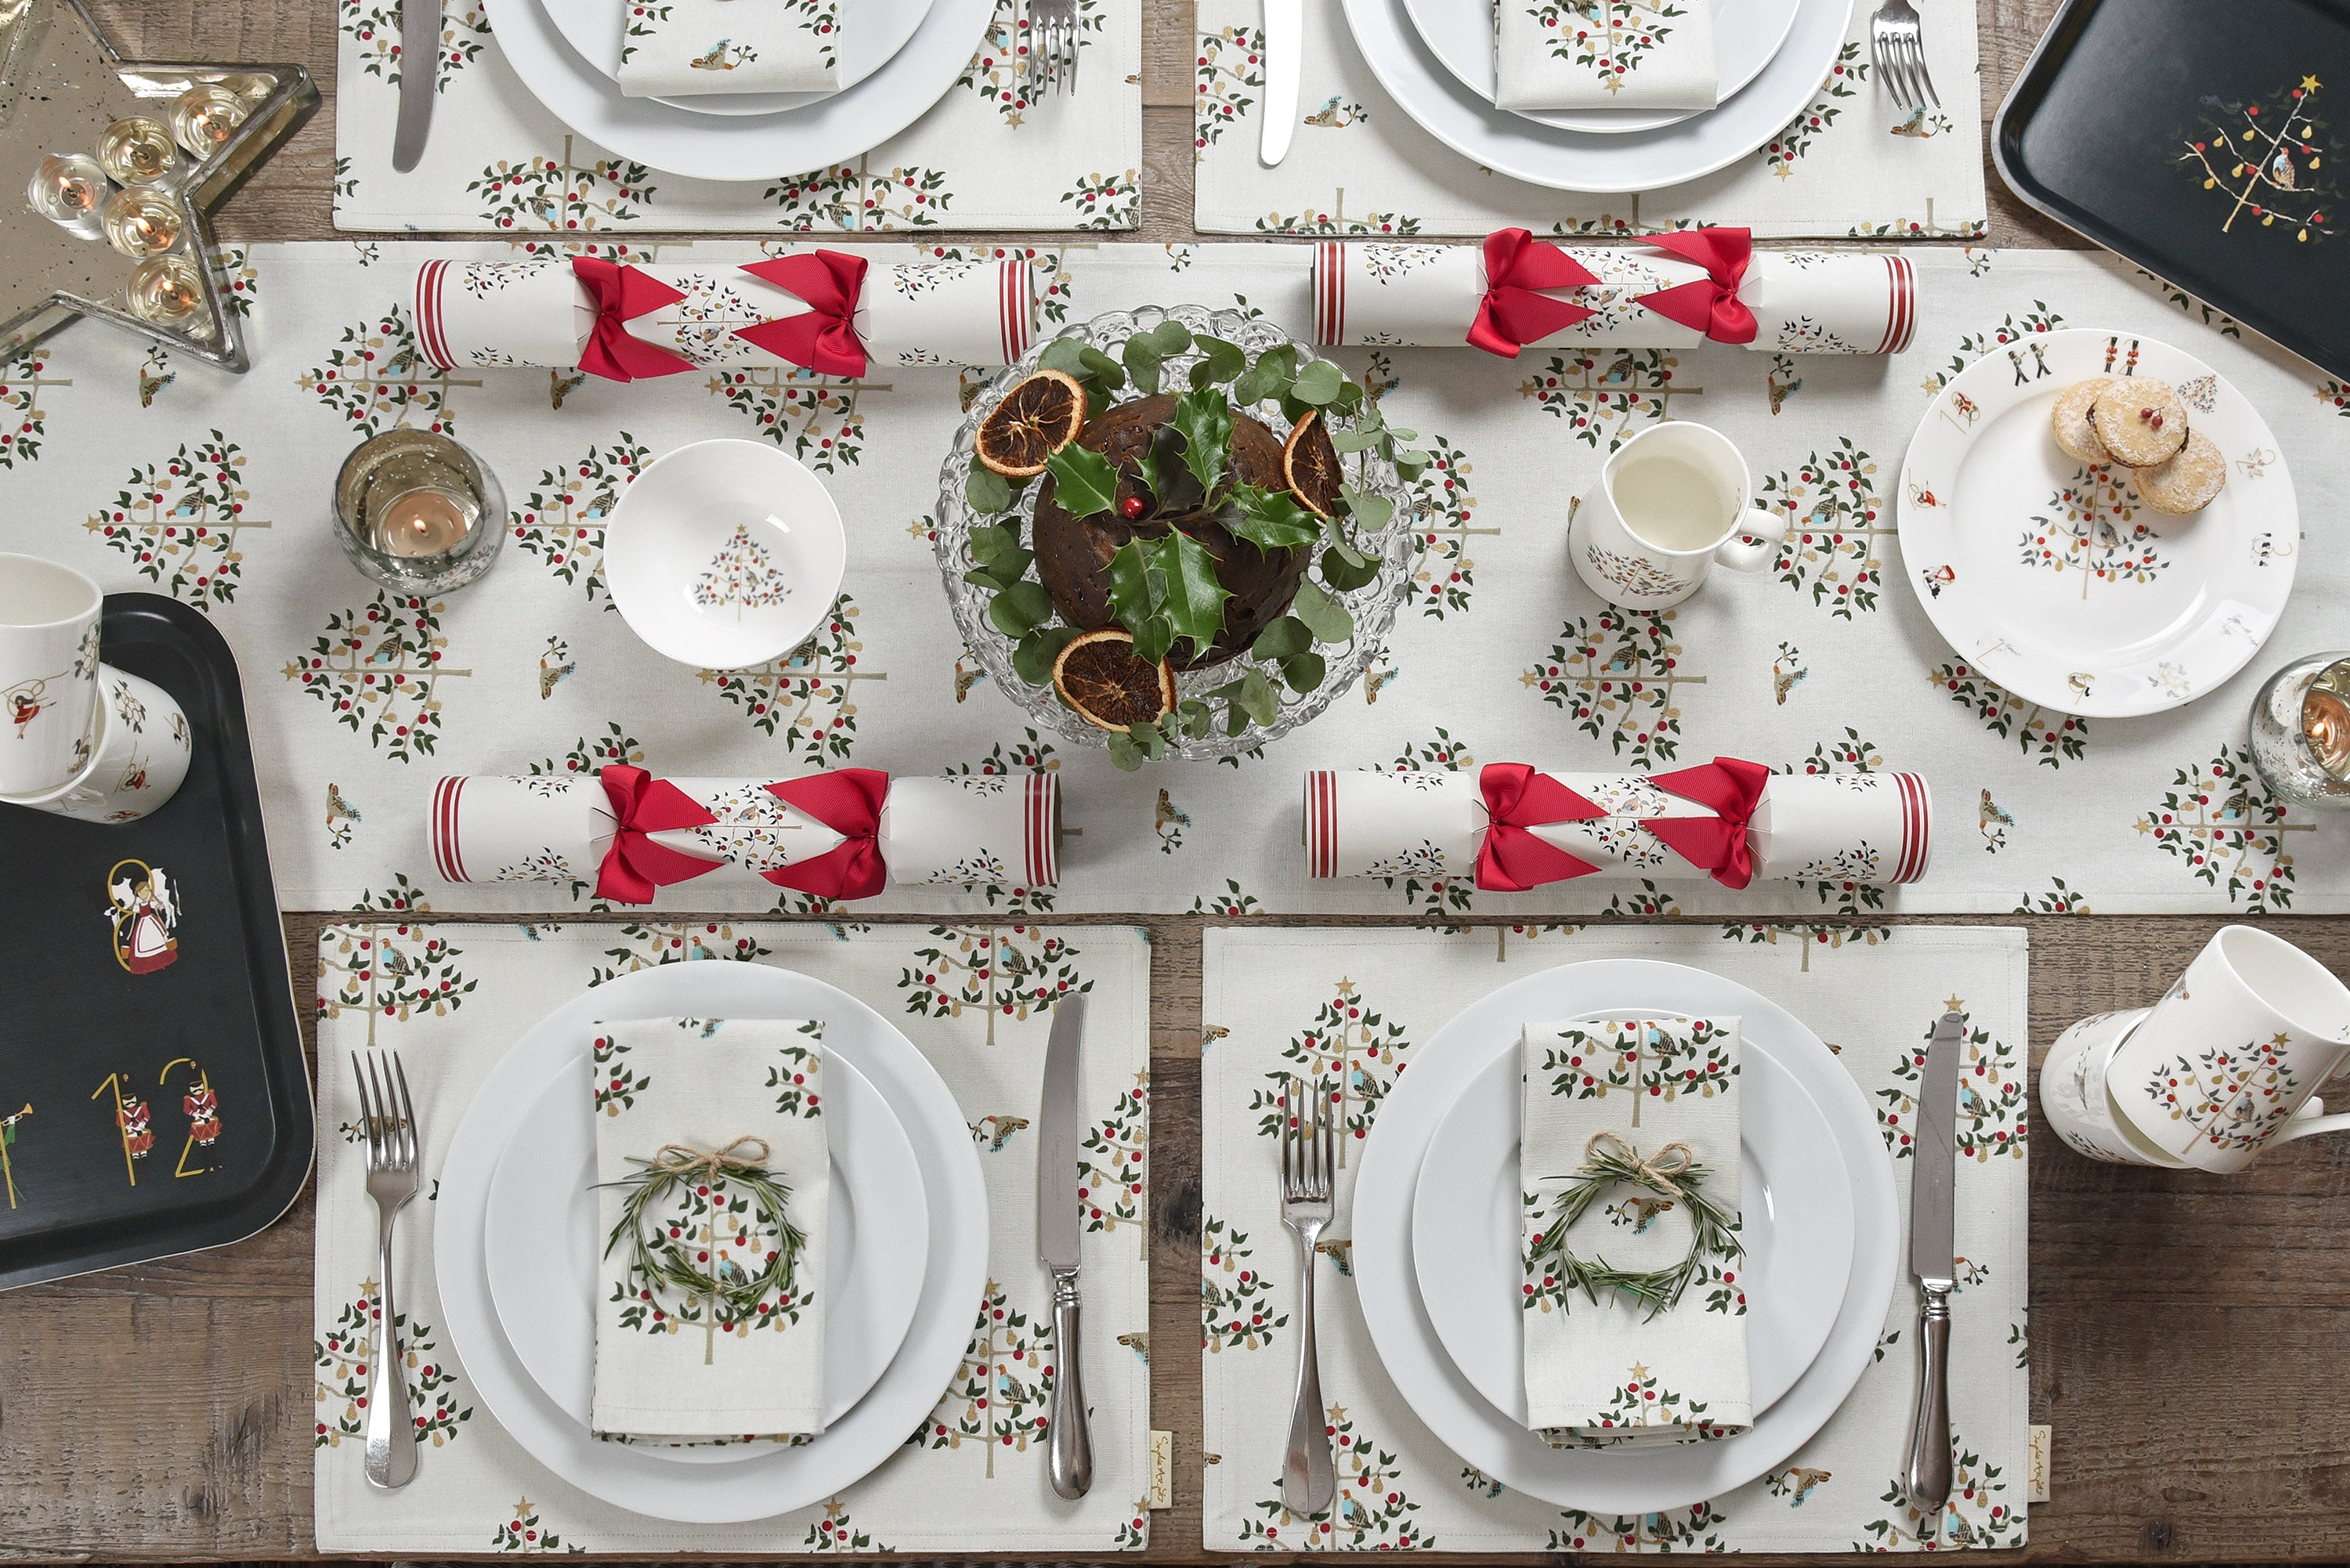 New Sophie Allport Christmas Collection - Partridge In A Pear Tree